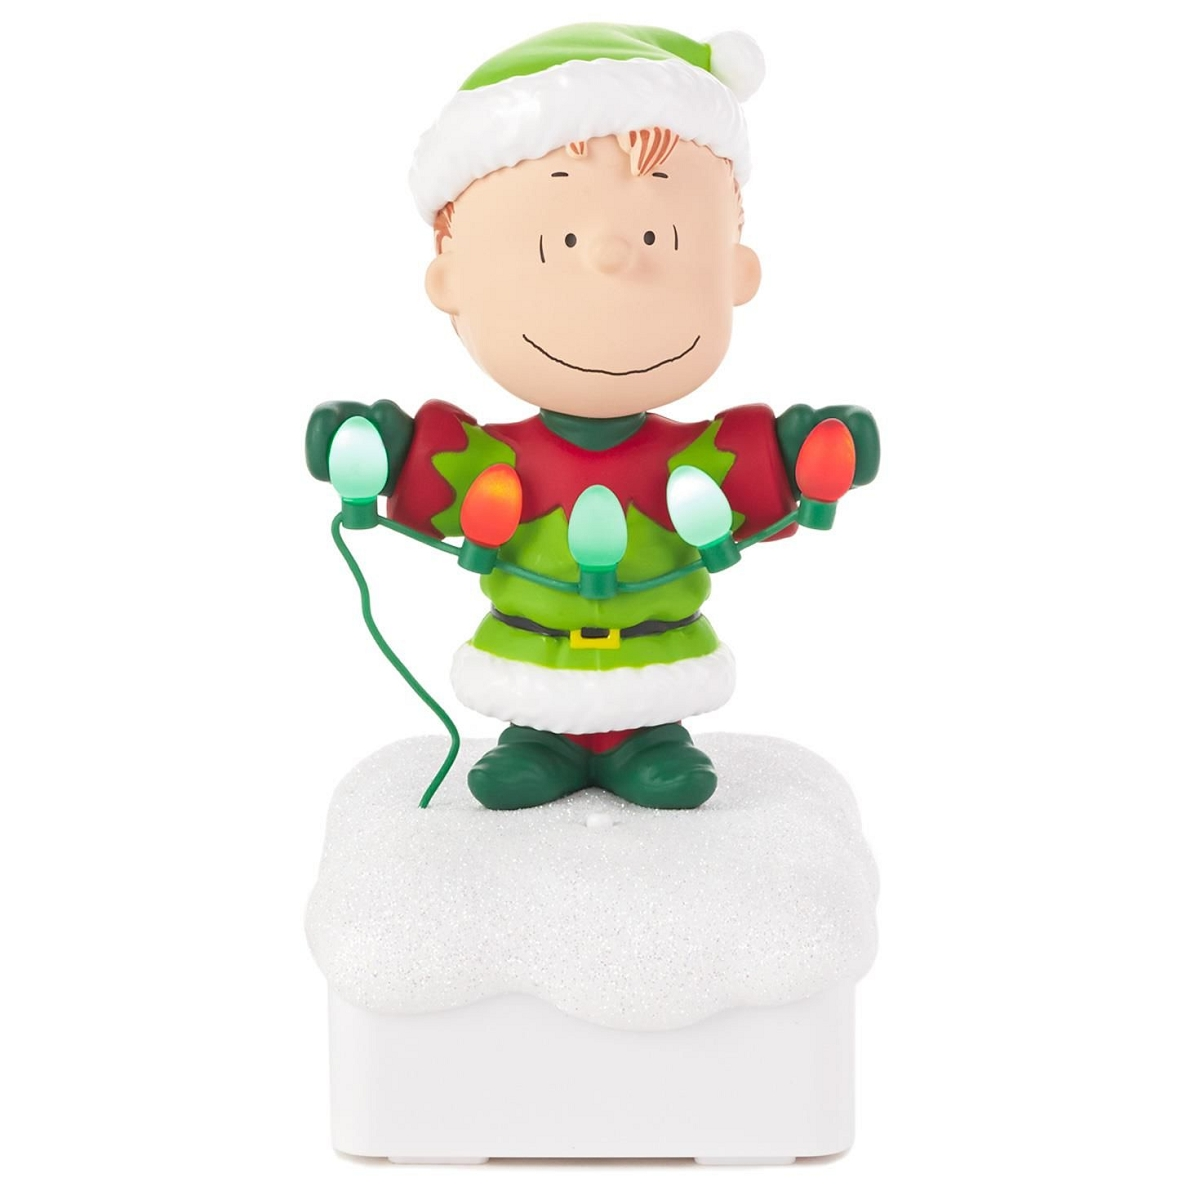 2015 Peanuts Gang Christmas Light Show - Hooked on Hallmark Ornaments